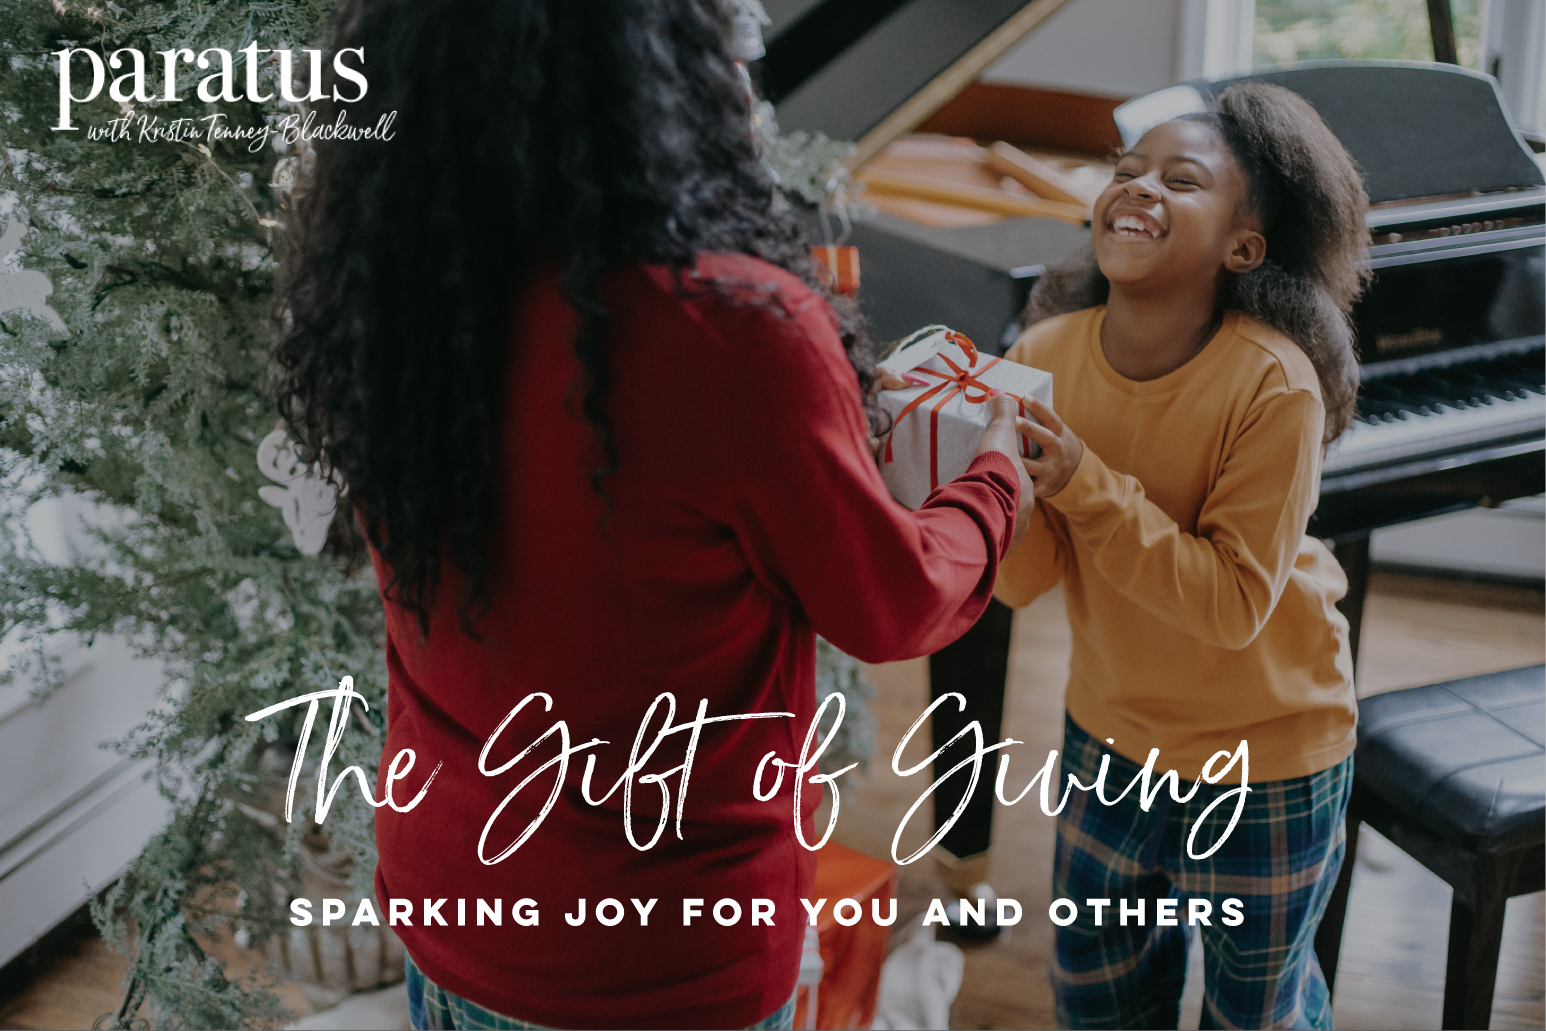 The Gift of Giving - Paratus with Kristin Tenney-Blackwell